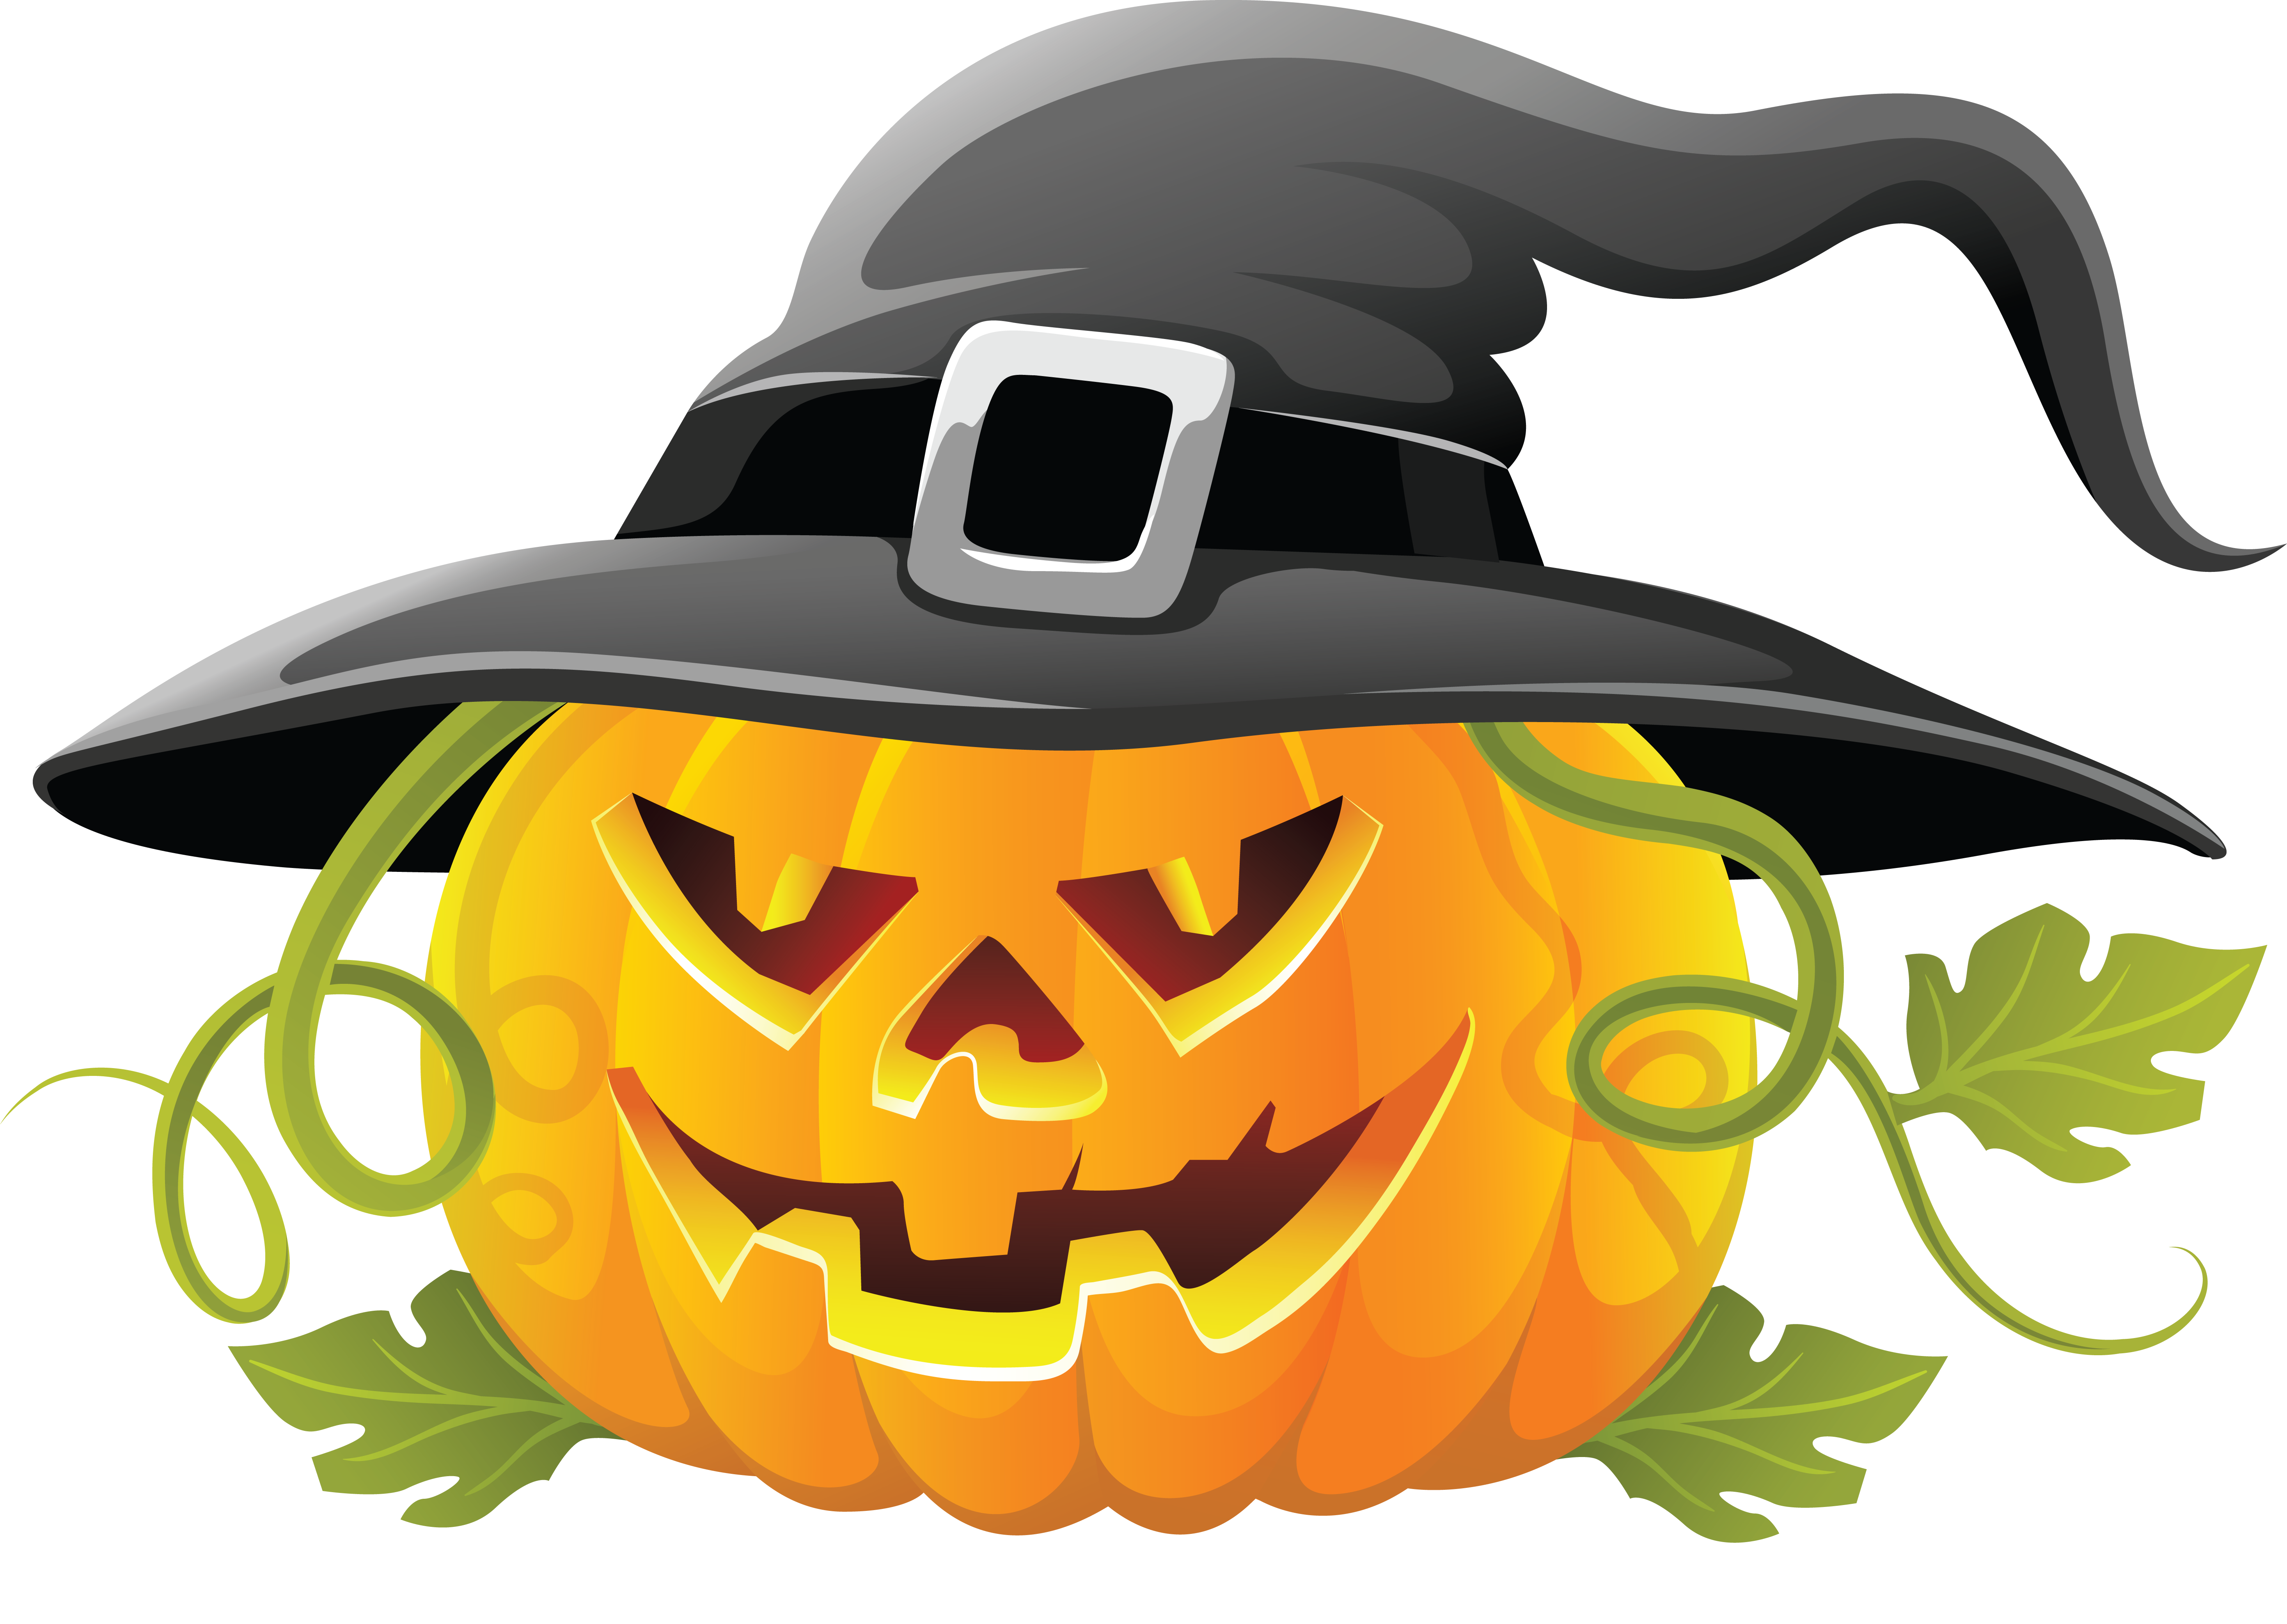 Png Background Transparent Halloween image #26463